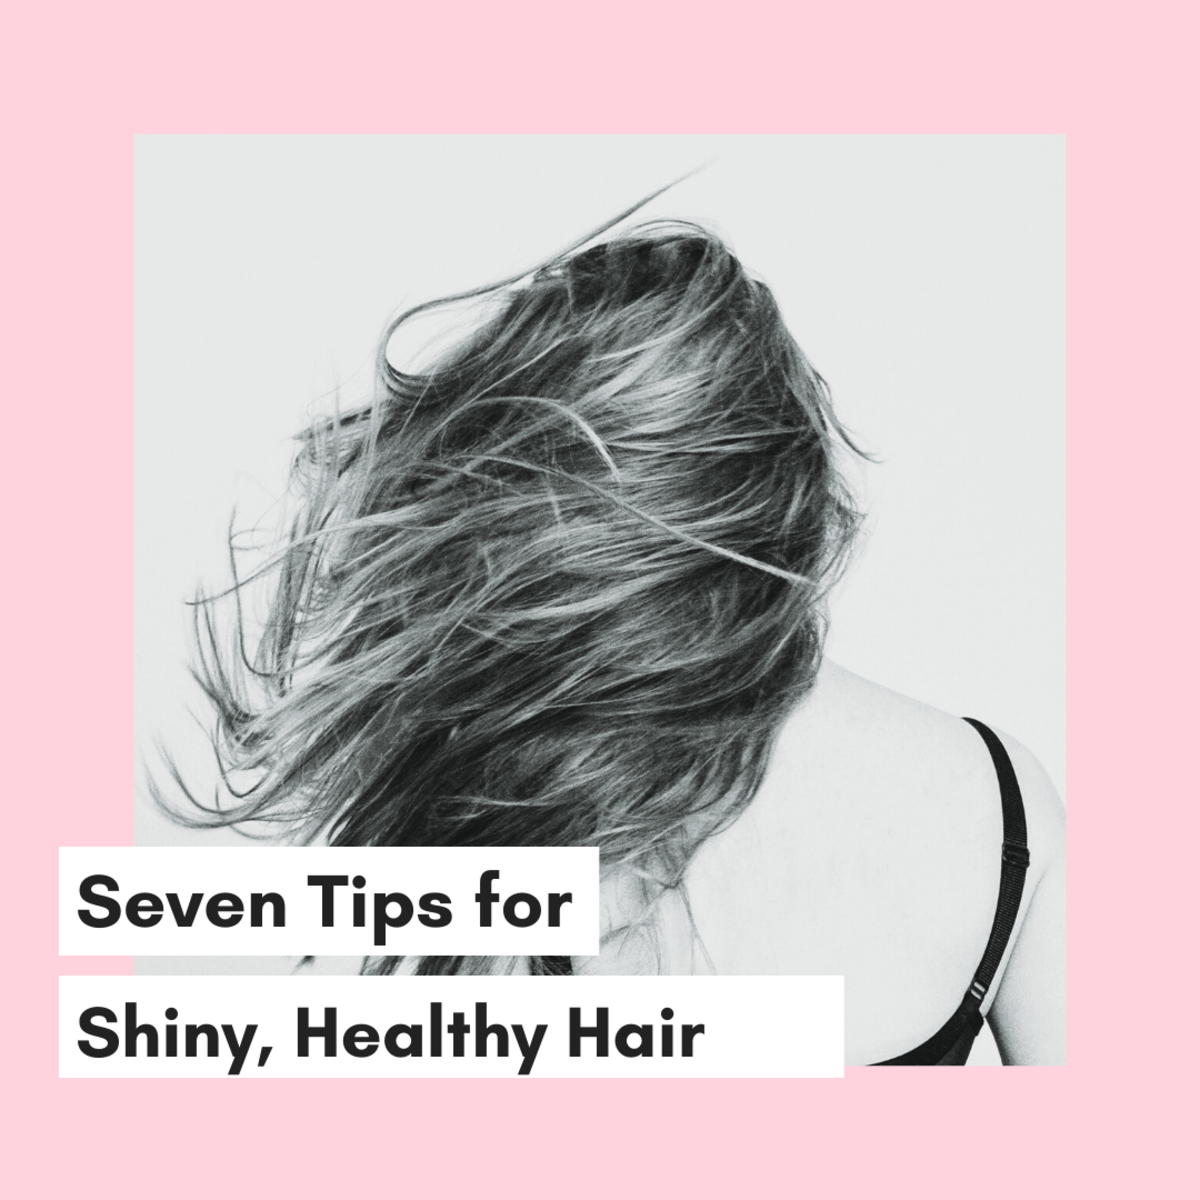 7 Ways to Keep Hair Healthy Whether It's Naturally Curly, Colored or Highlighted